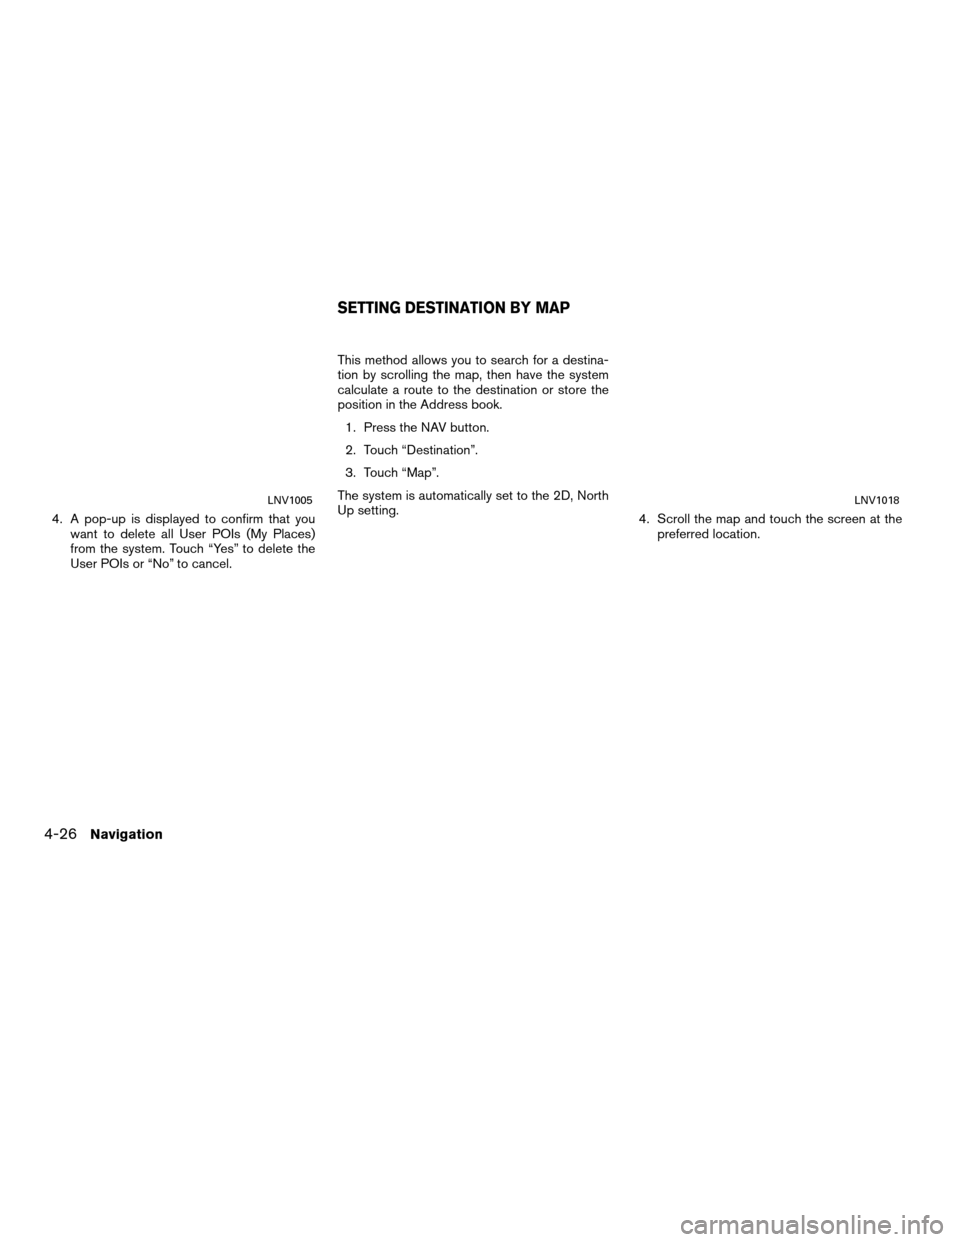 NISSAN SENTRA 2011 B16 / 6.G LC Navigation Manual, Page 54